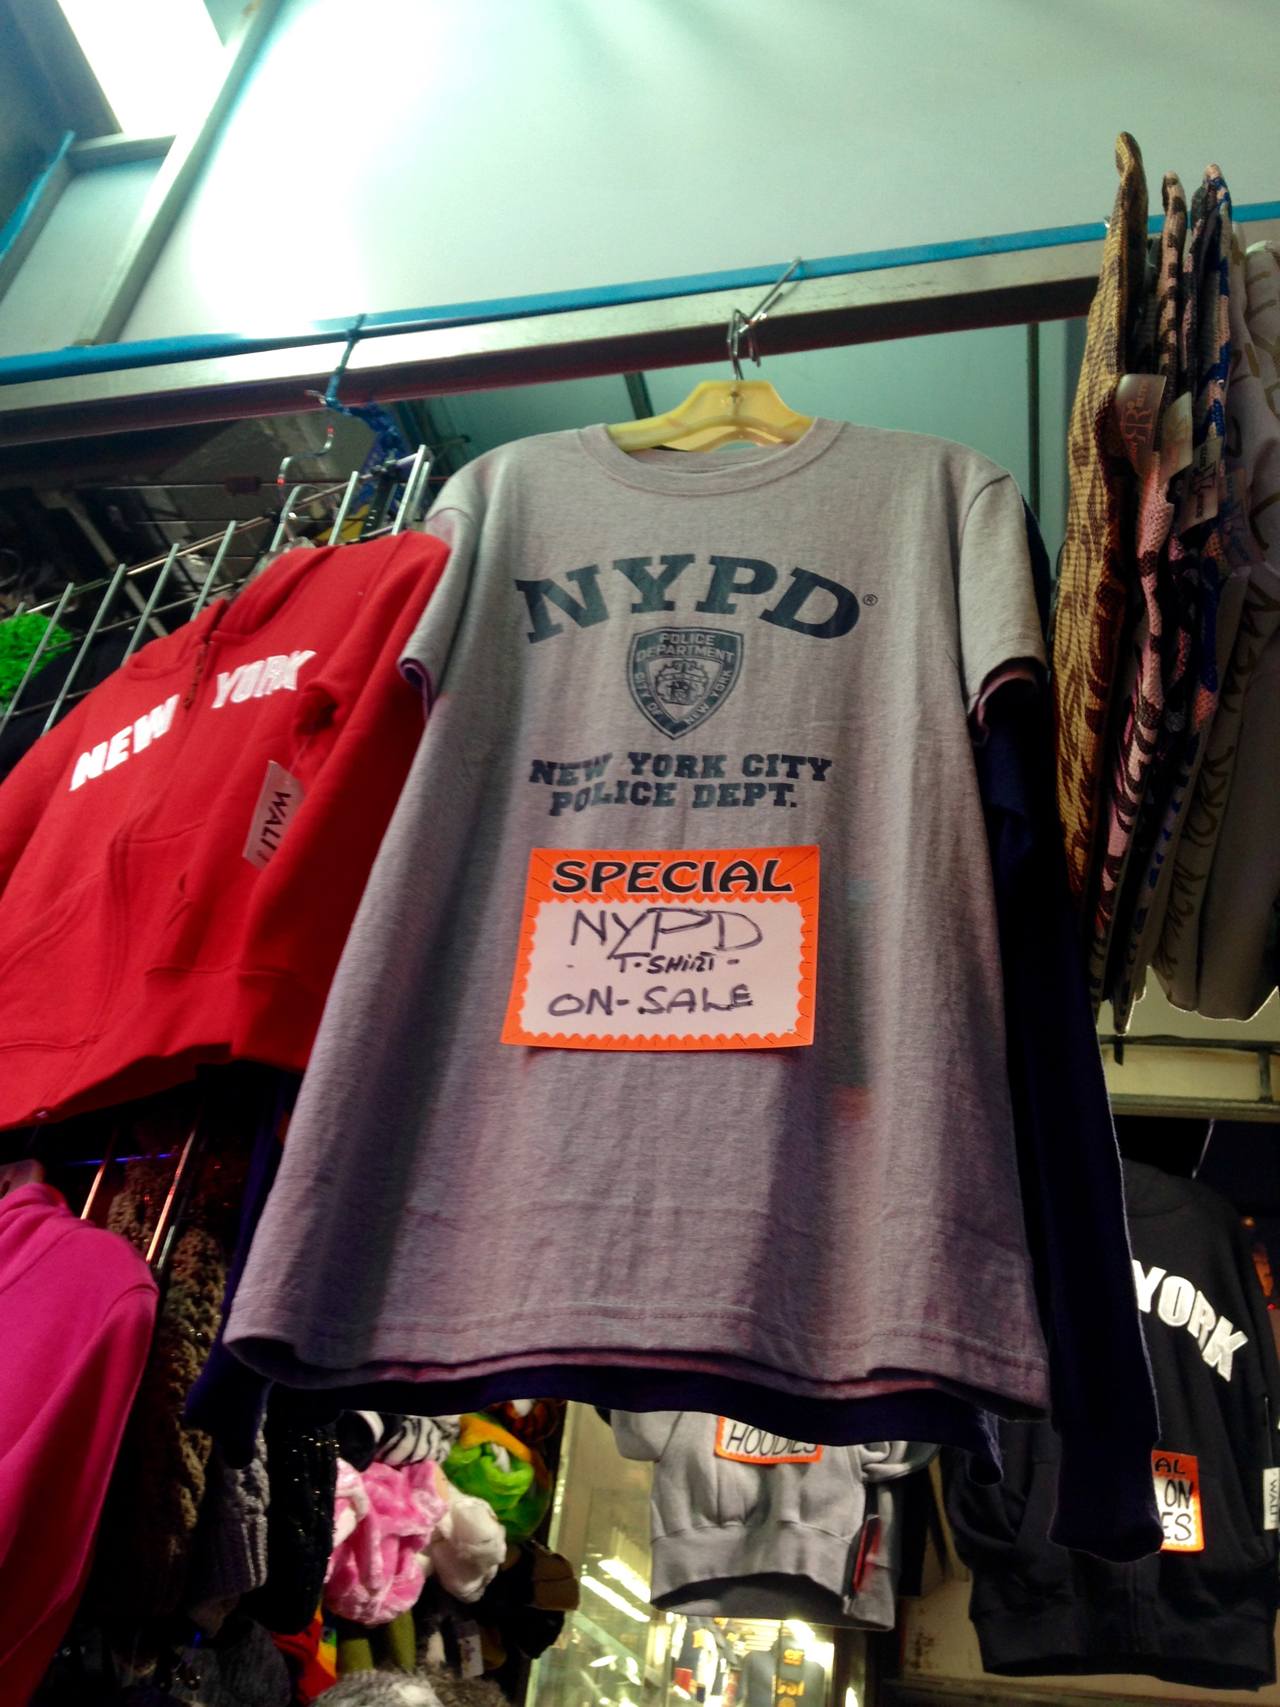 NYPD shirt for sale in Times Square